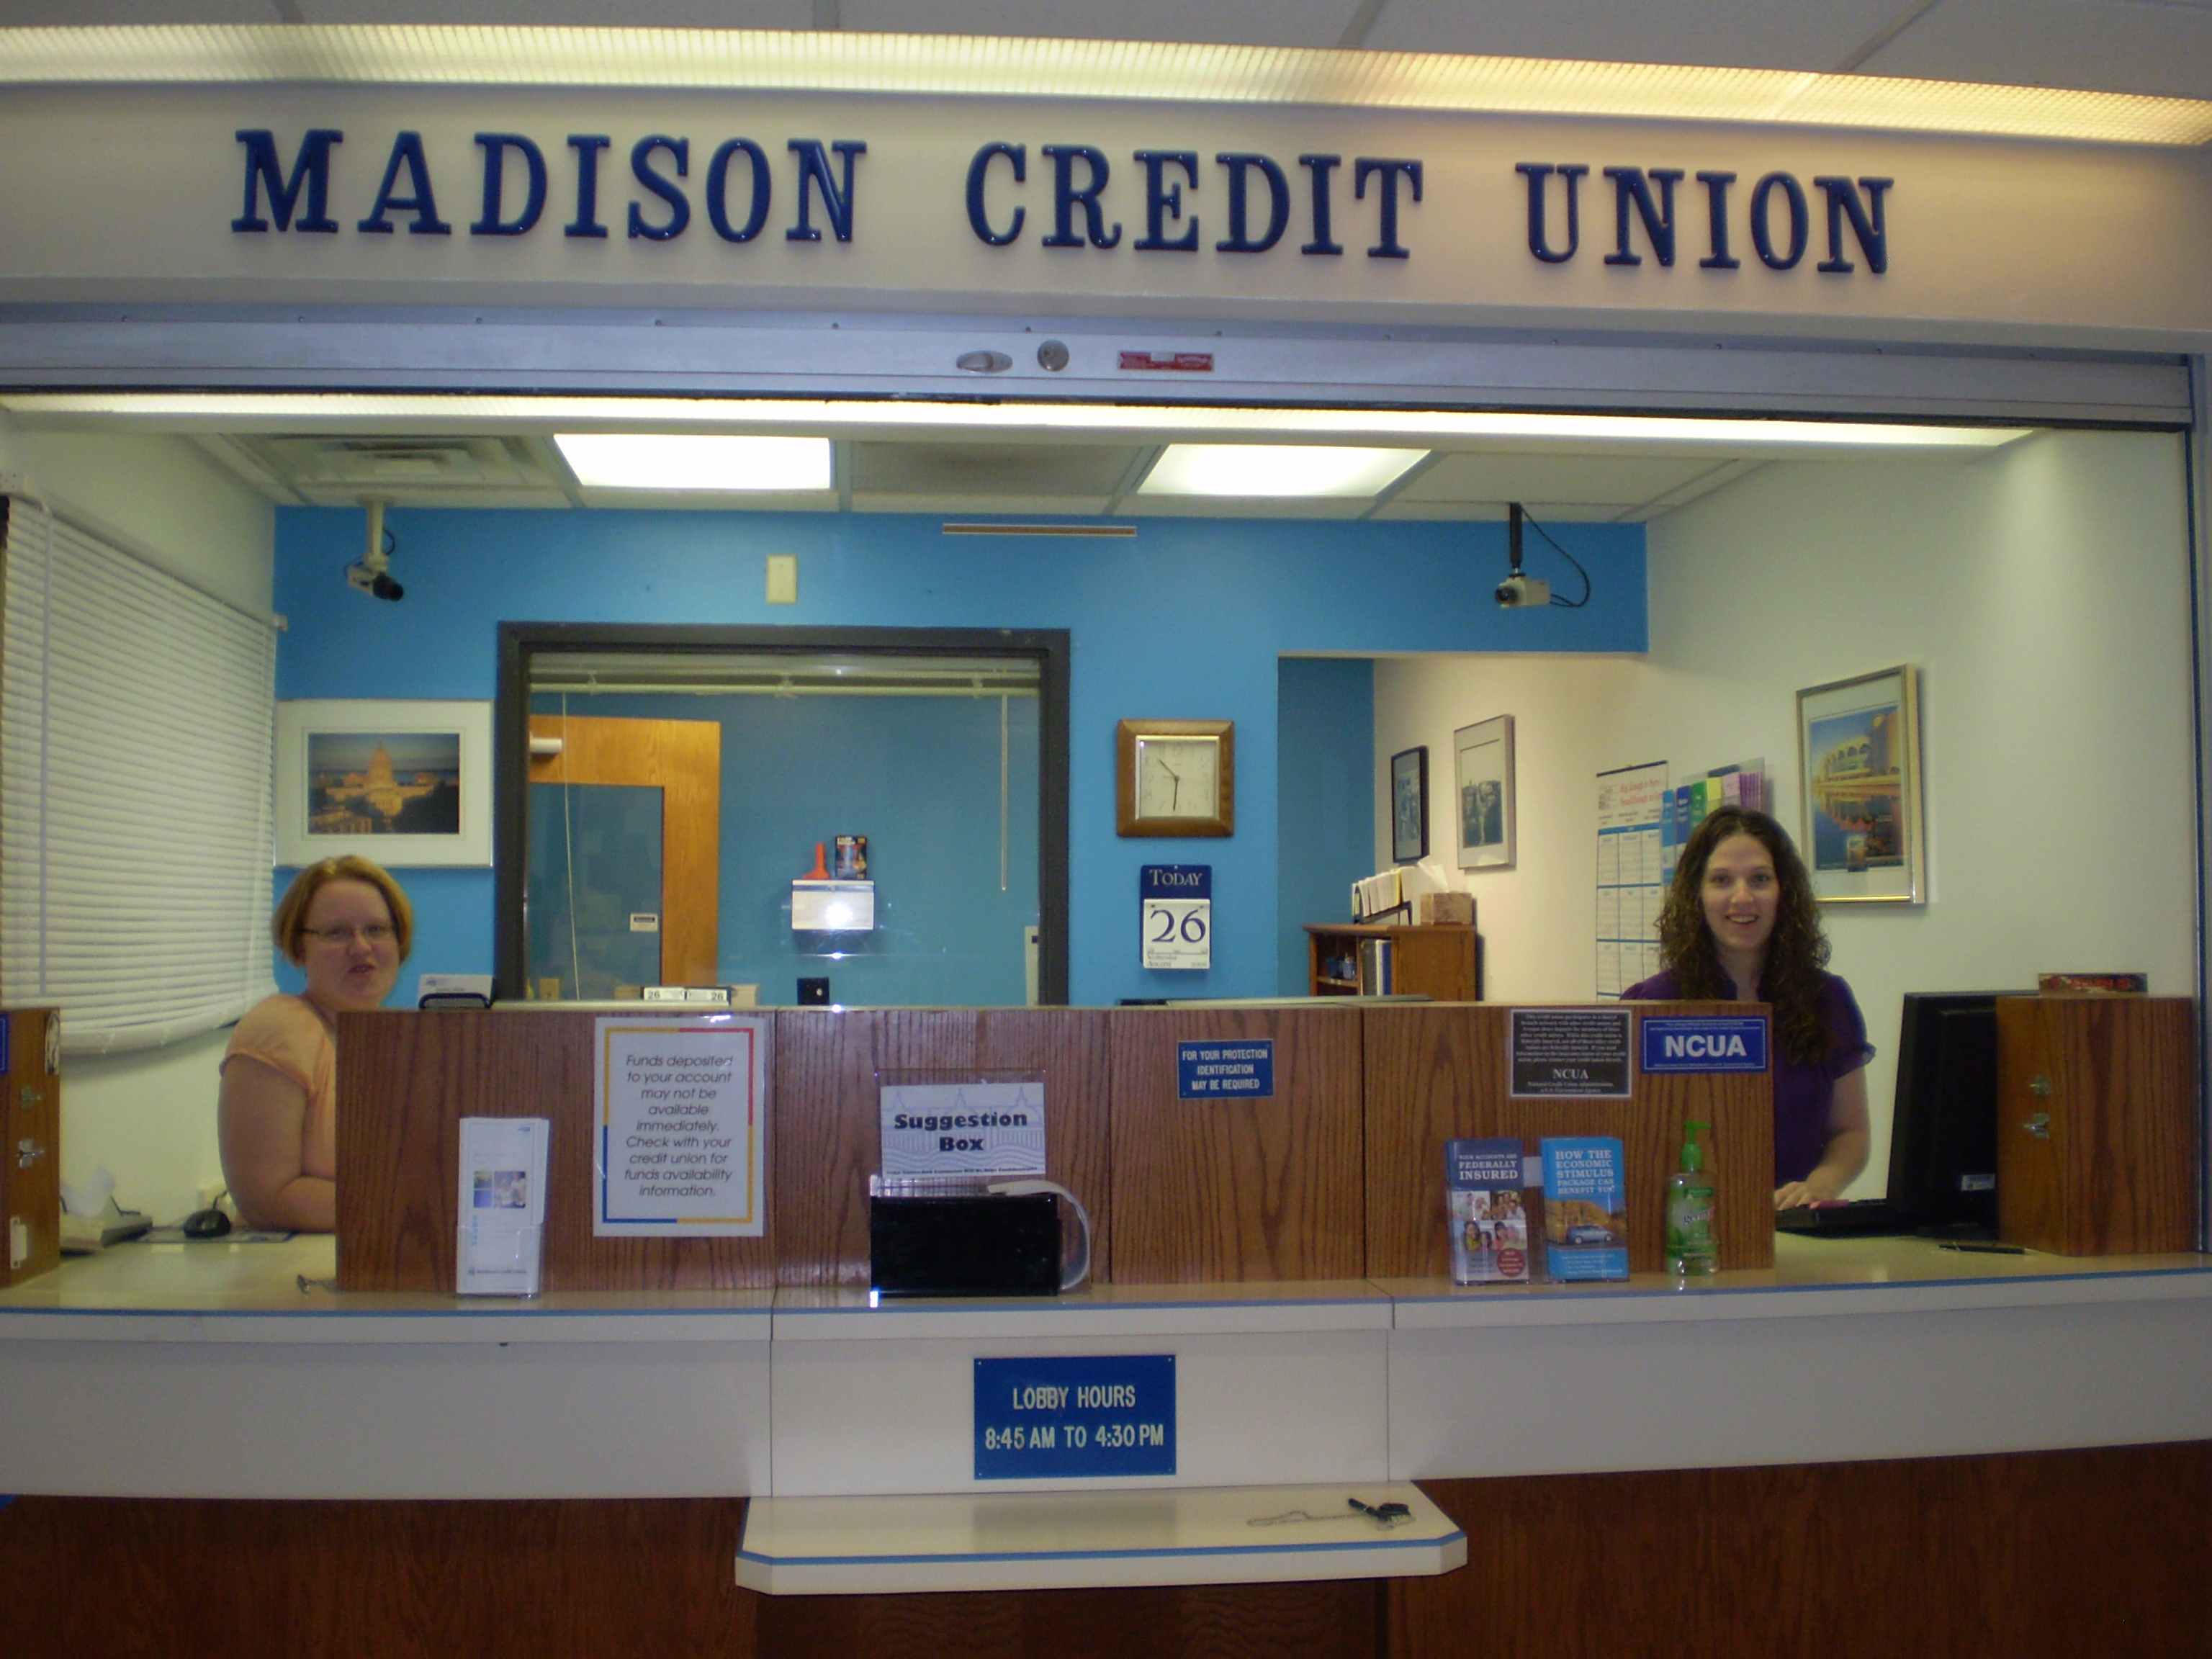 About the credit union madison credit union for Motor city credit union locations